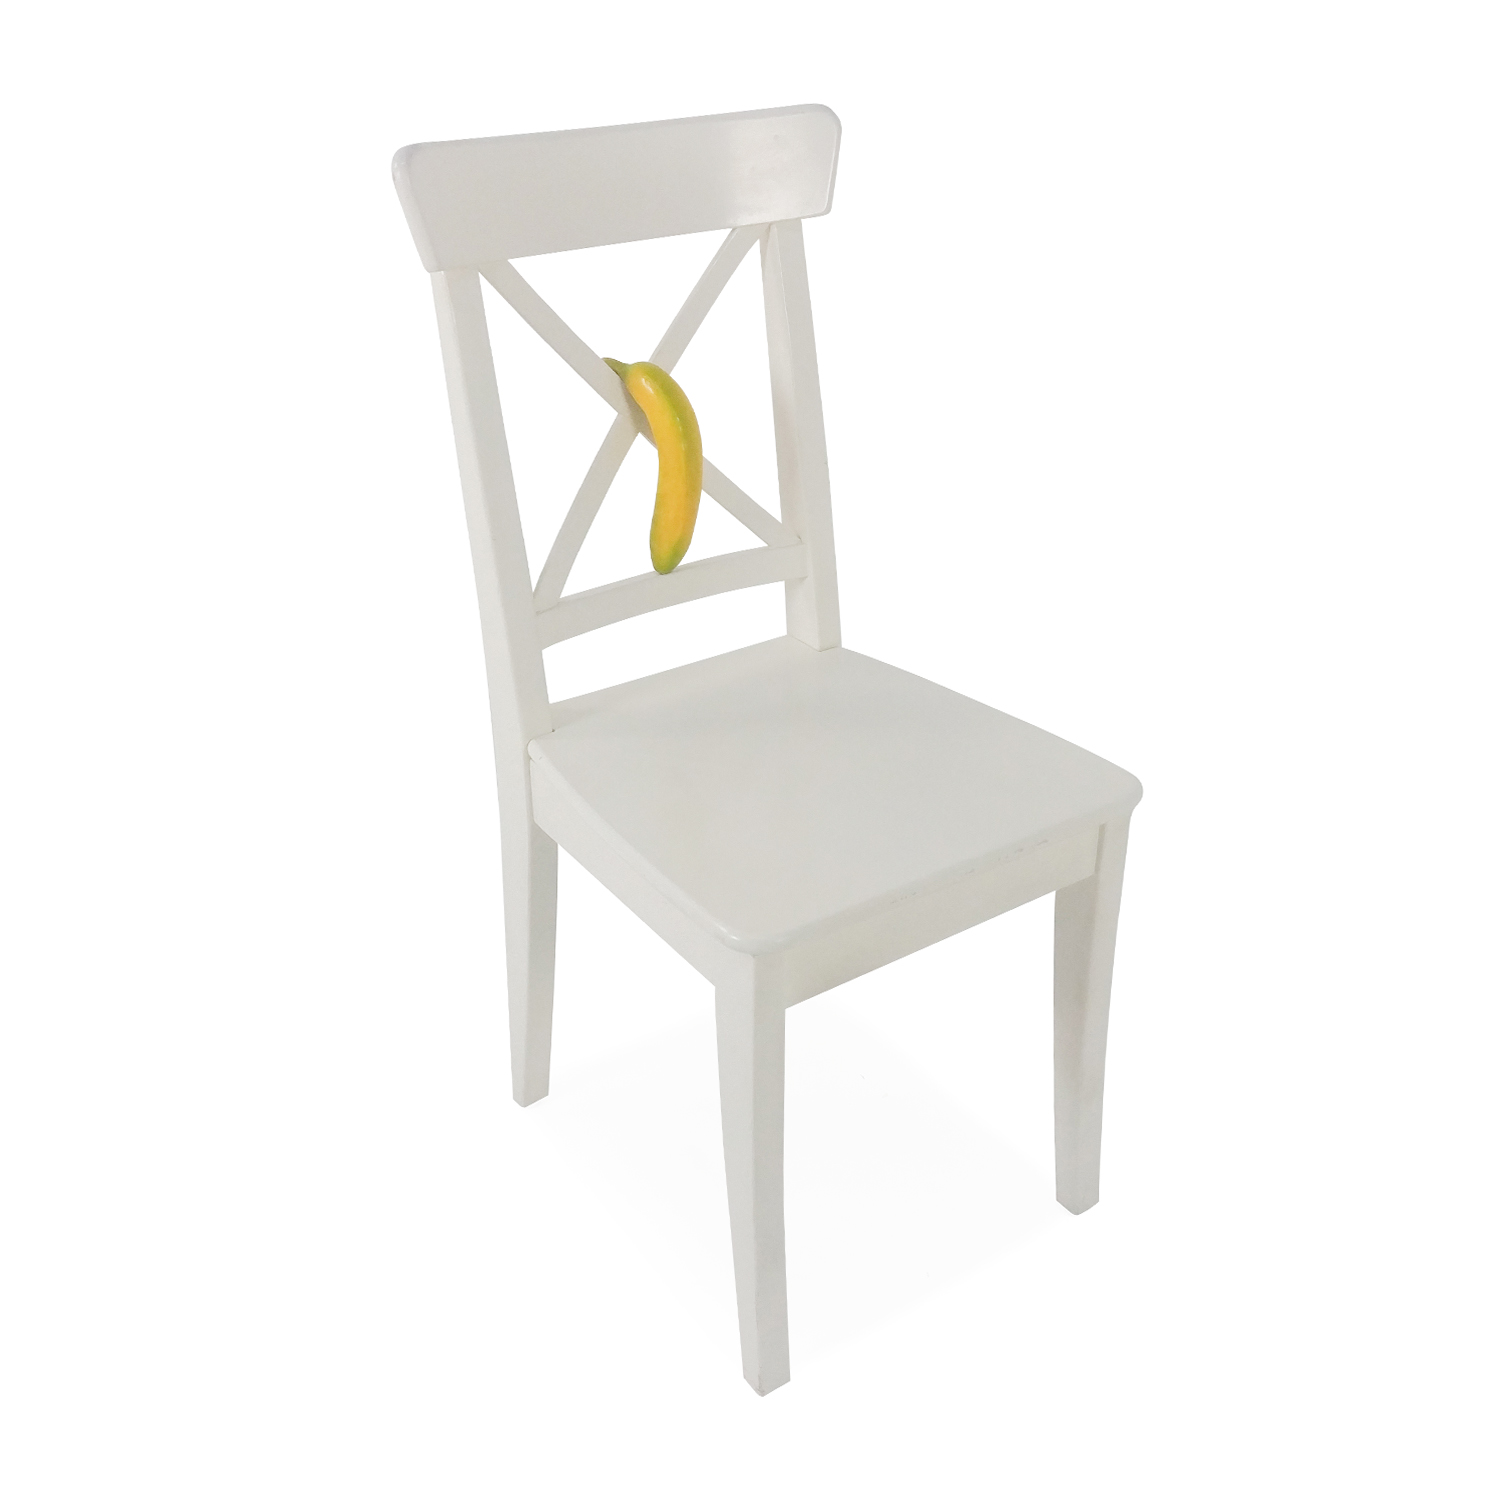 IKEA Ingolf White Dining Chair / Chairs